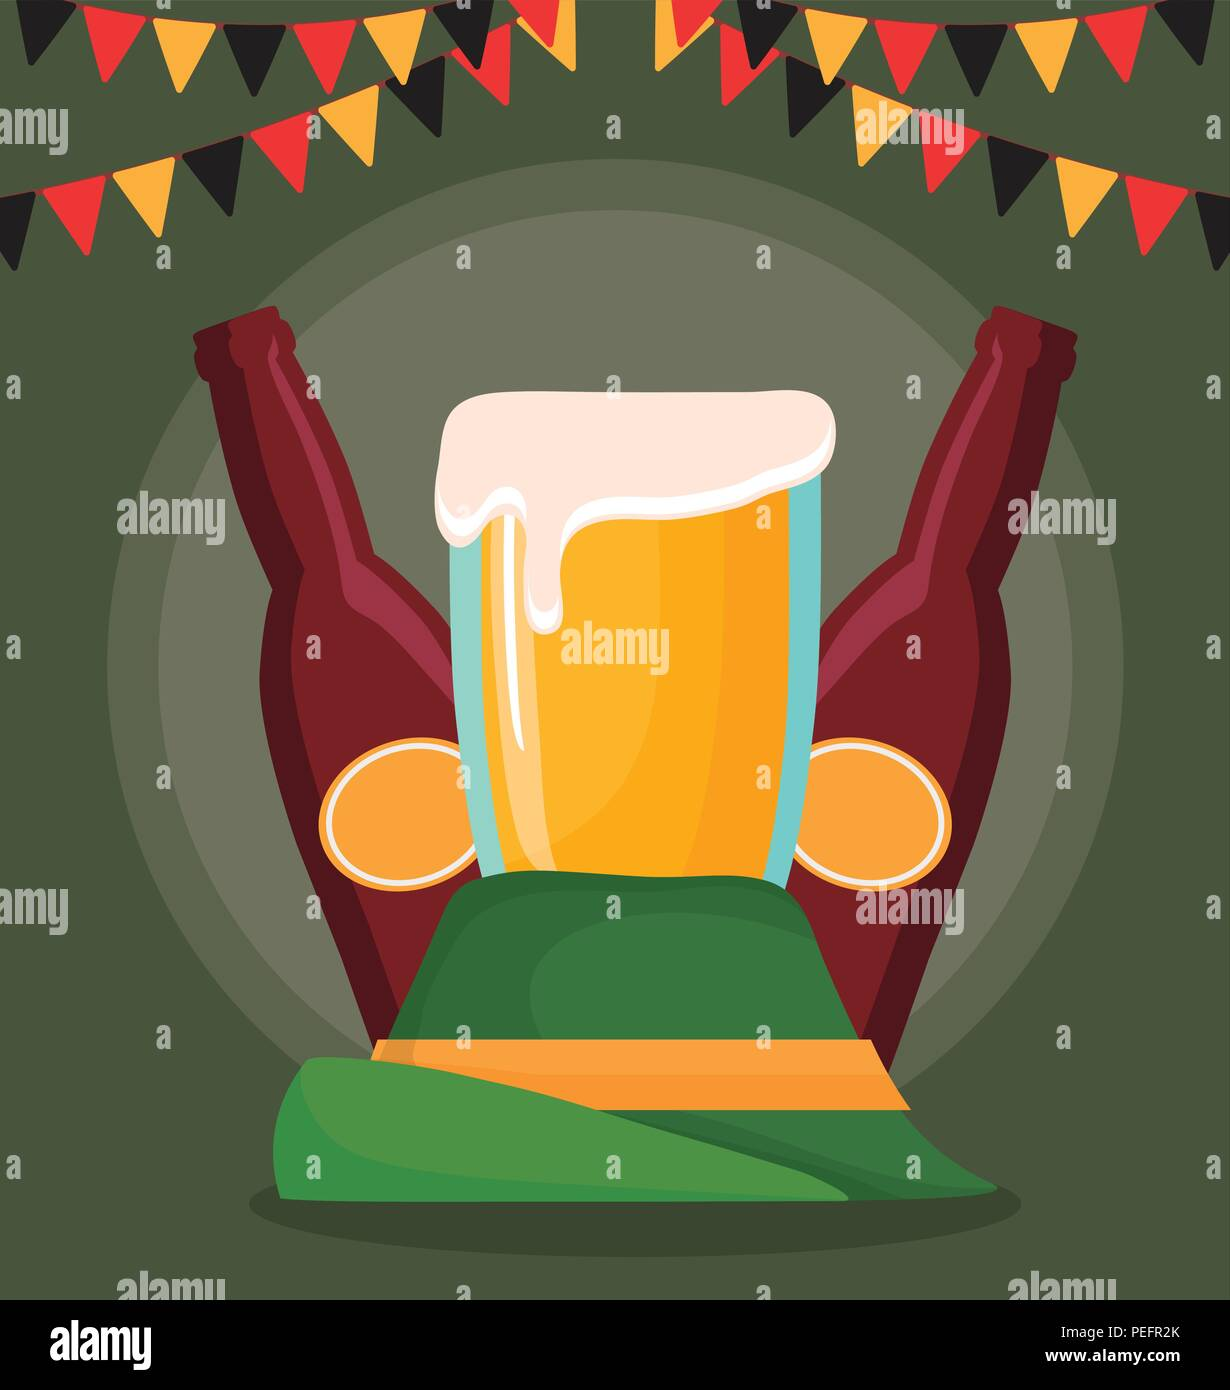 Oktoberfest festival design with alpine hat and beers over green background 88709b467b6